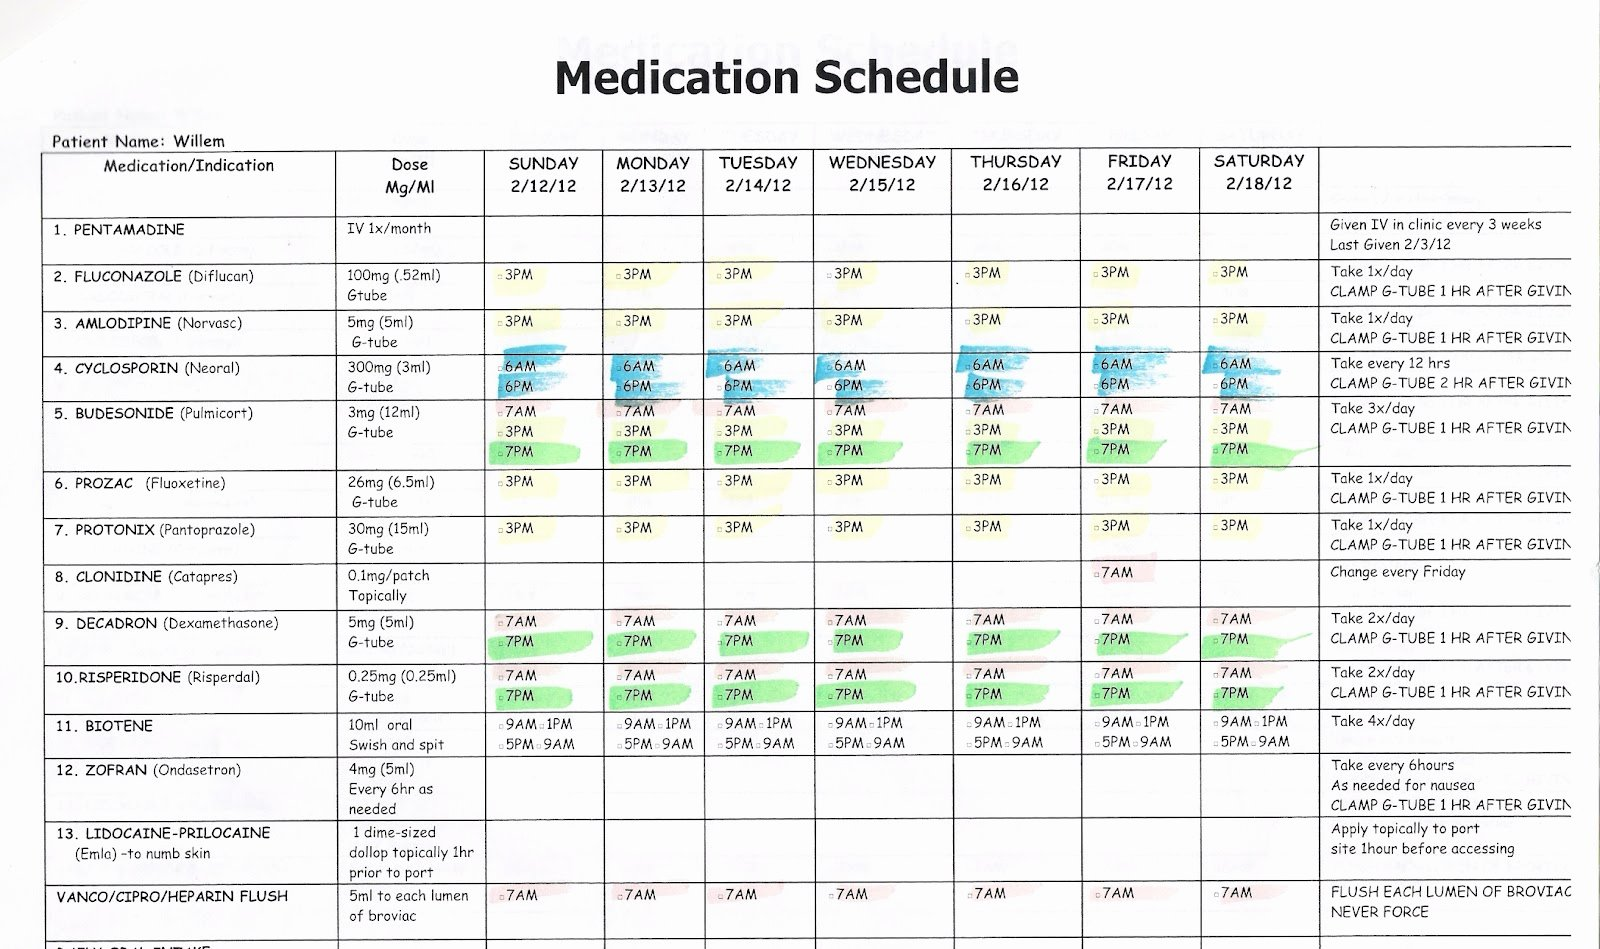 Weekly Medication Schedule Template New Willem February 2012